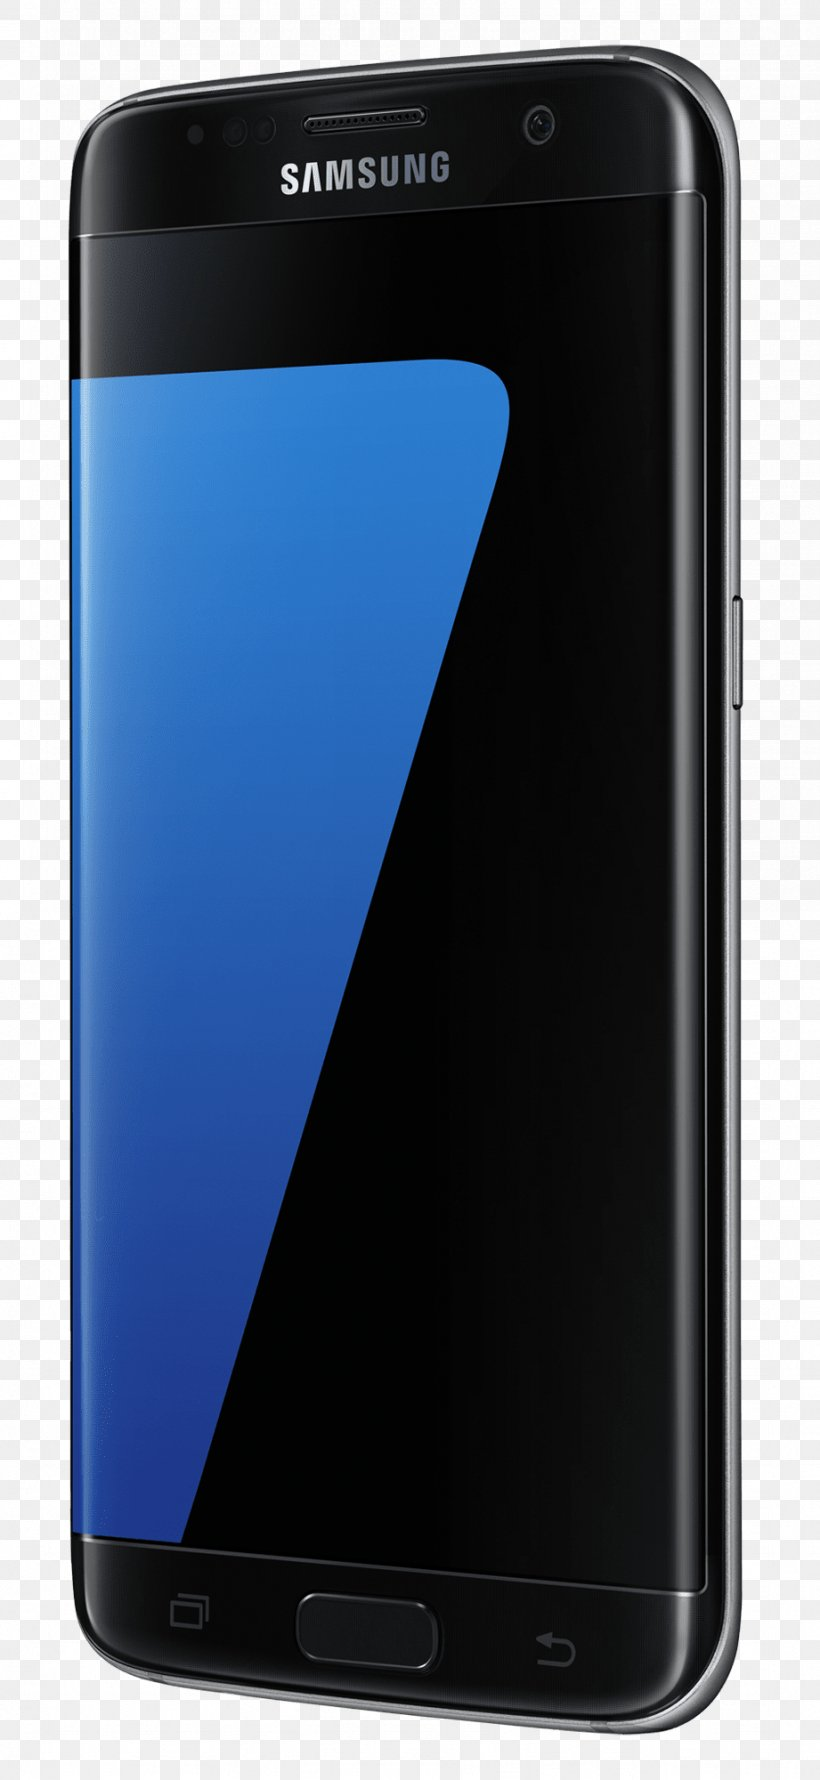 Samsung GALAXY S7 Edge Samsung Galaxy S9 Samsung Galaxy S6 Android, PNG, 921x2000px, Samsung Galaxy S7 Edge, Android, Cellular Network, Communication Device, Electronic Device Download Free